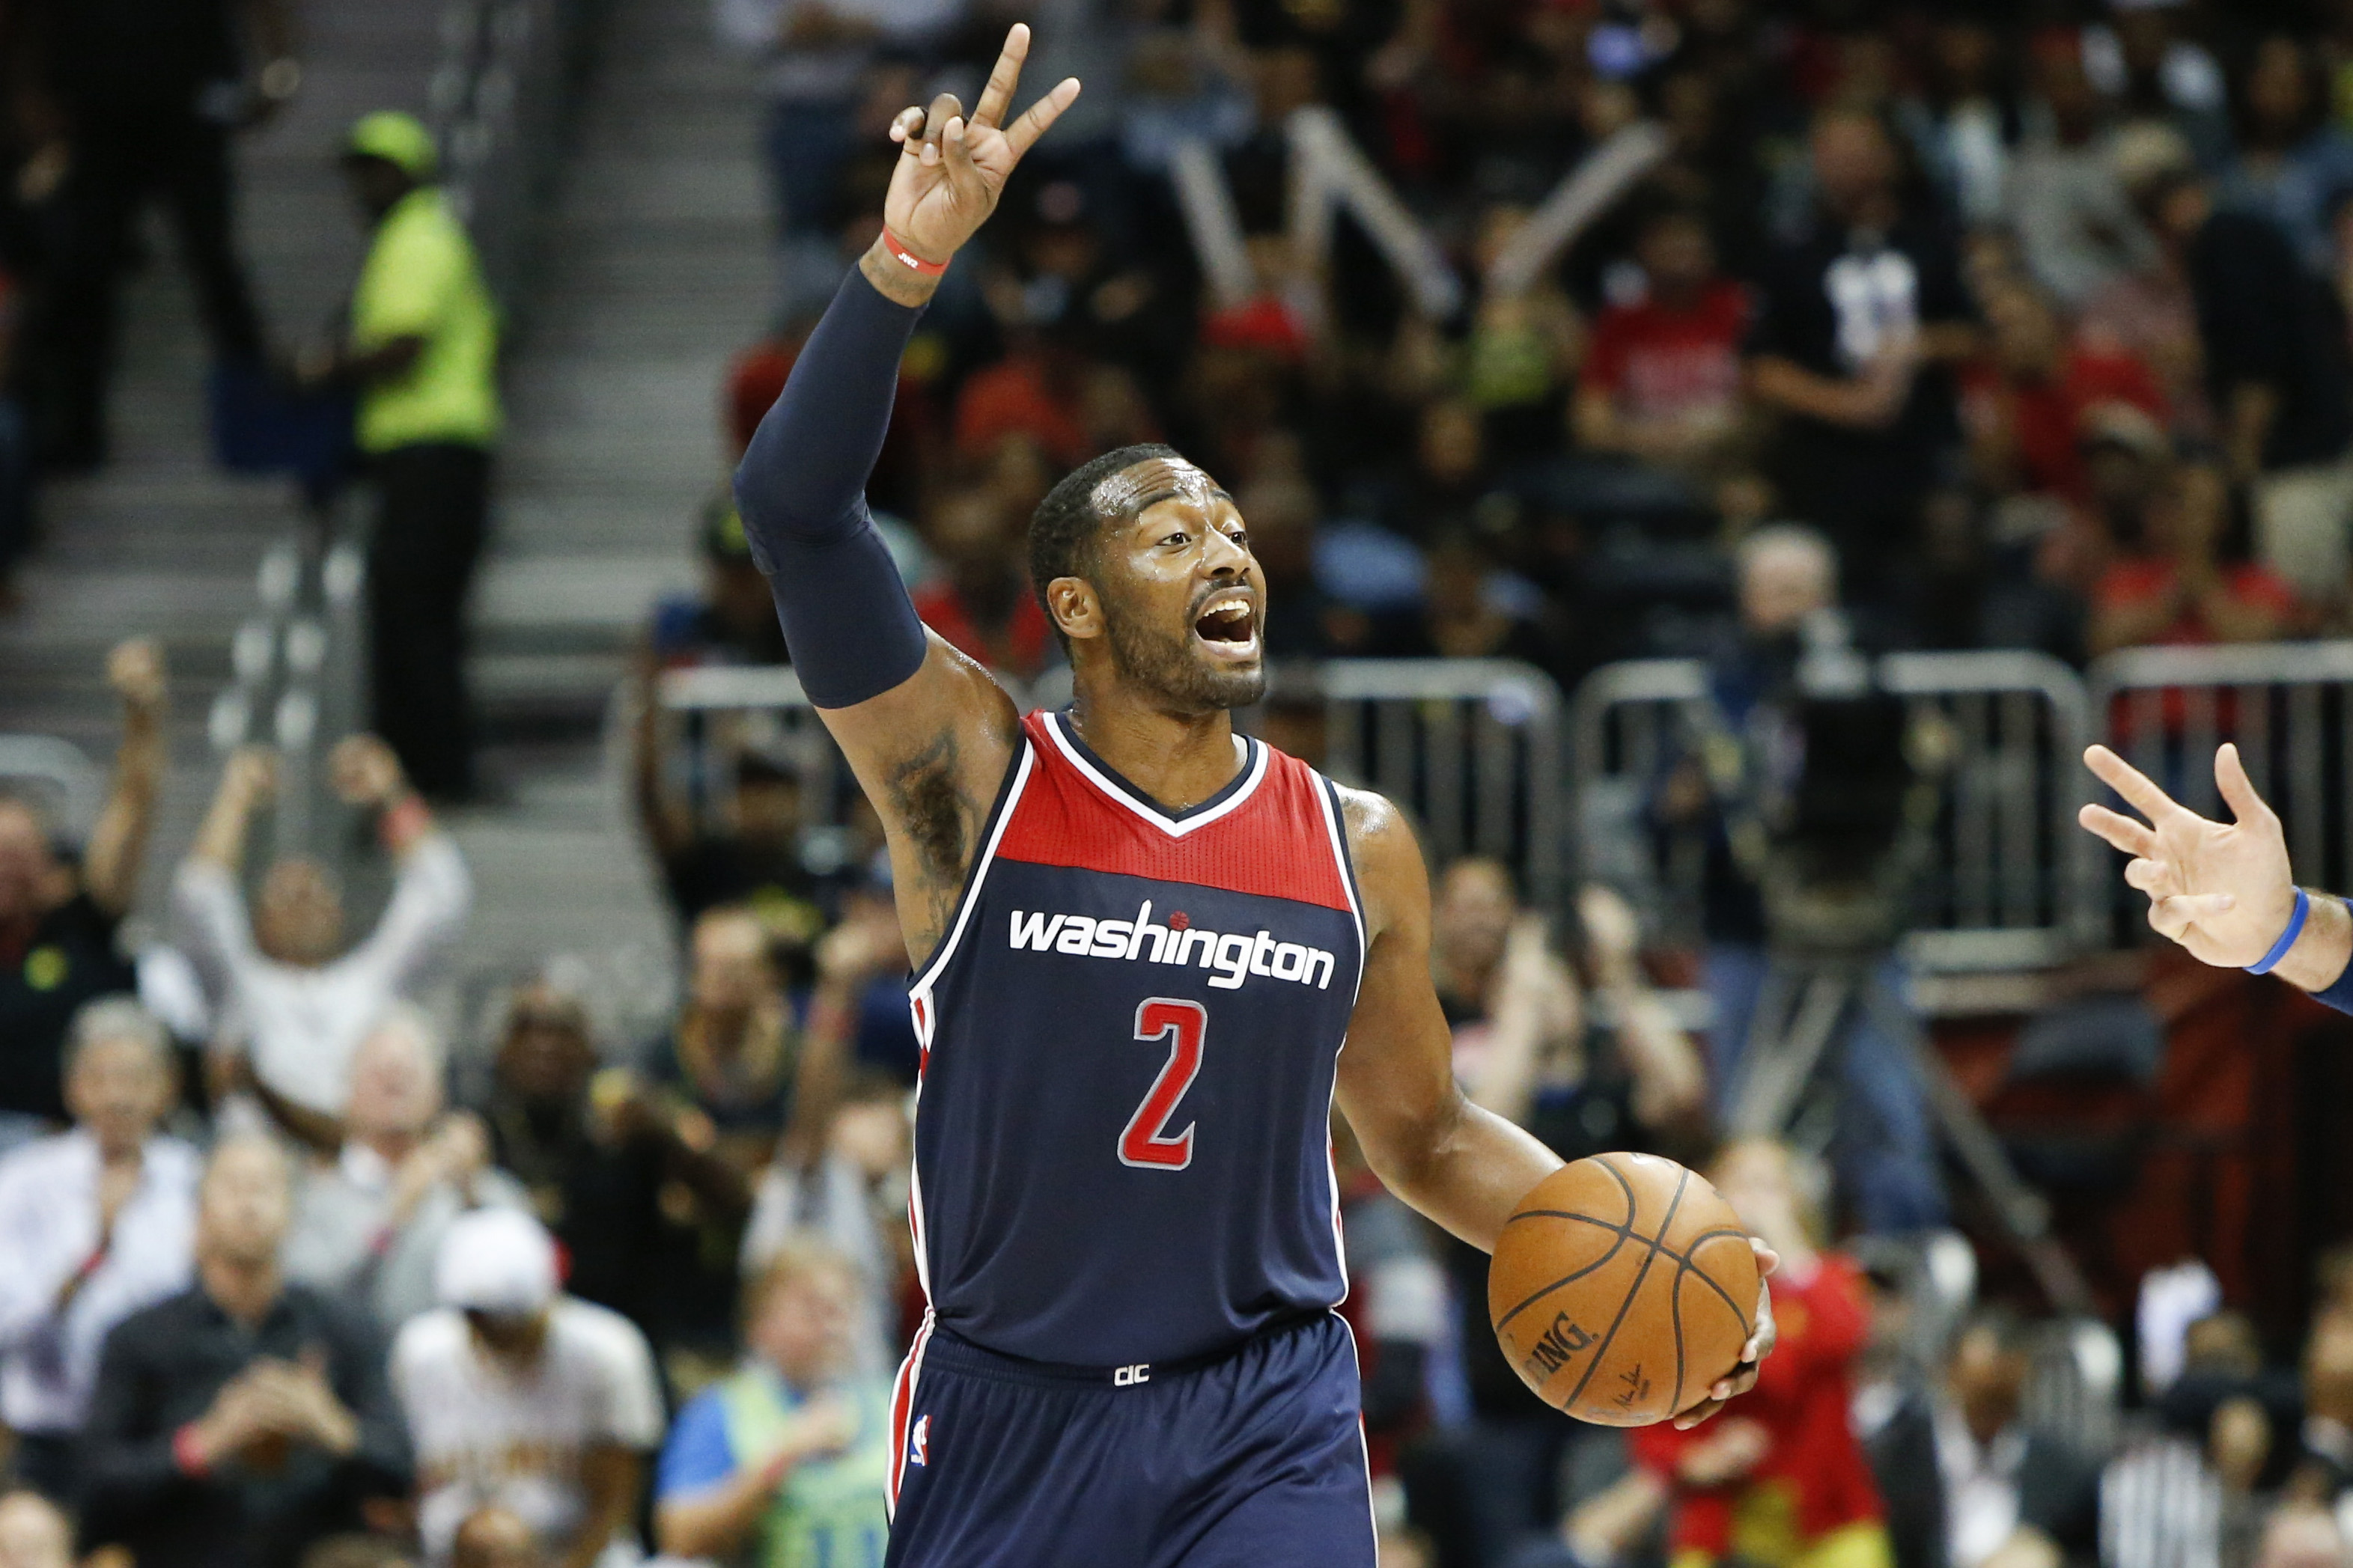 10029766-nba-playoffs-washington-wizards-at-atlanta-hawks-1